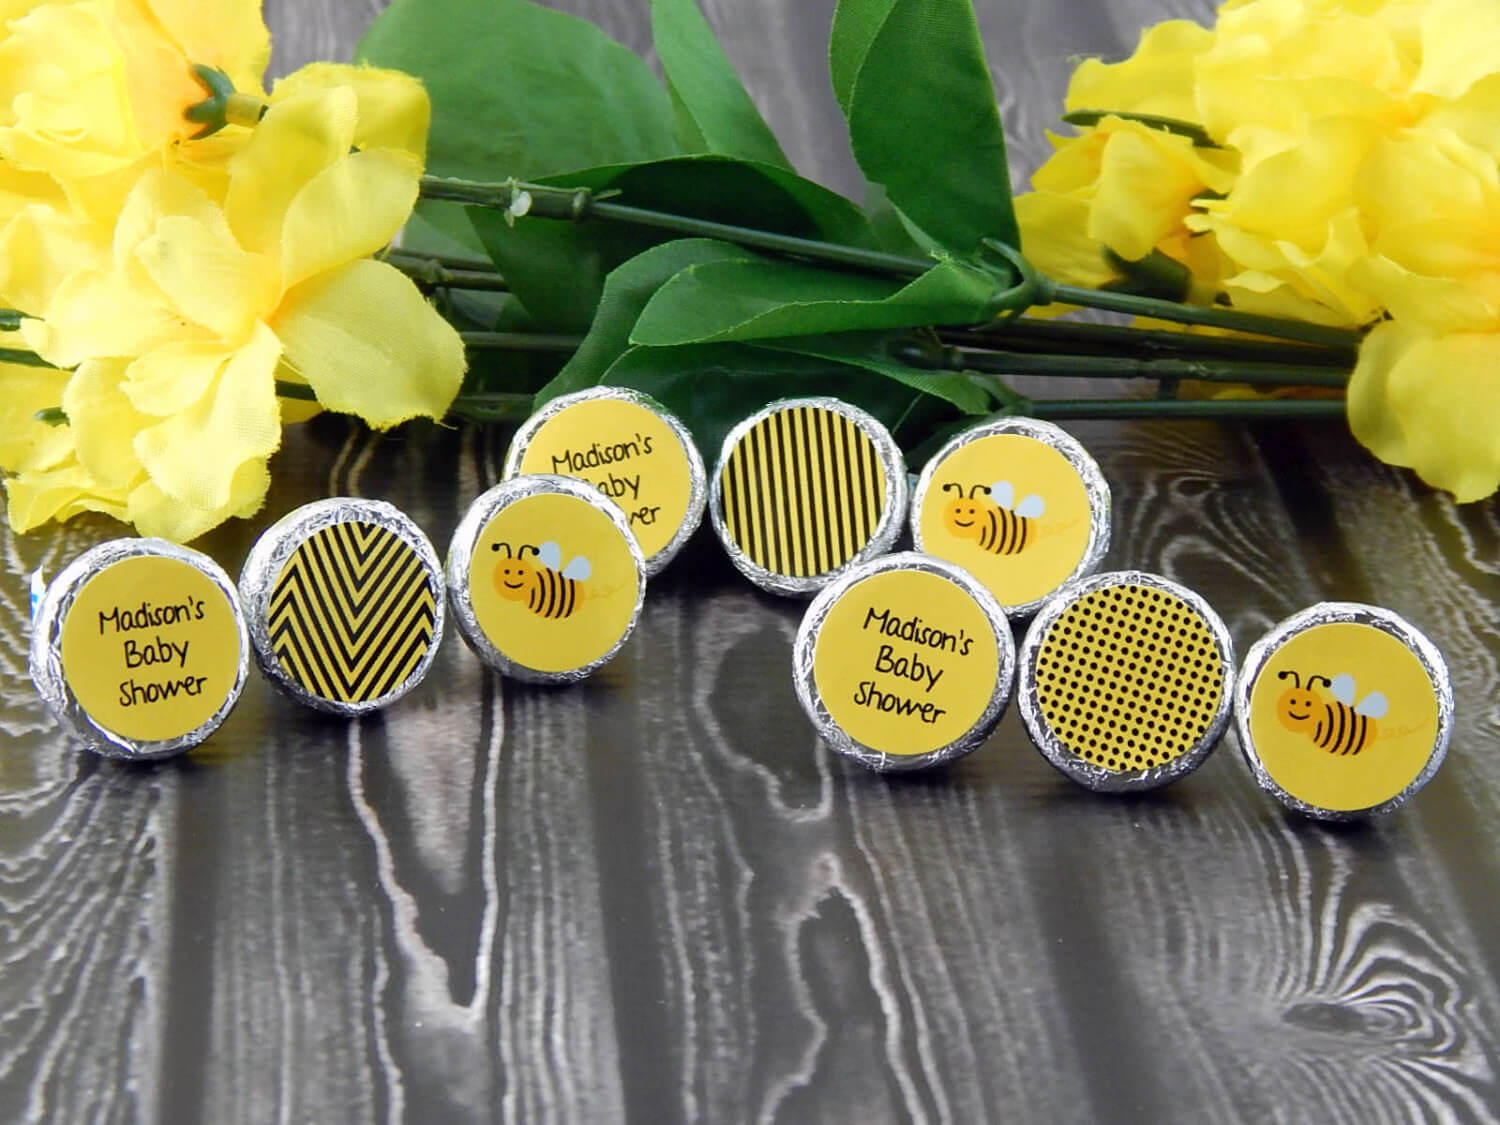 Bumble Bee Baby Shower Favors - Bumble Bee Party Favors